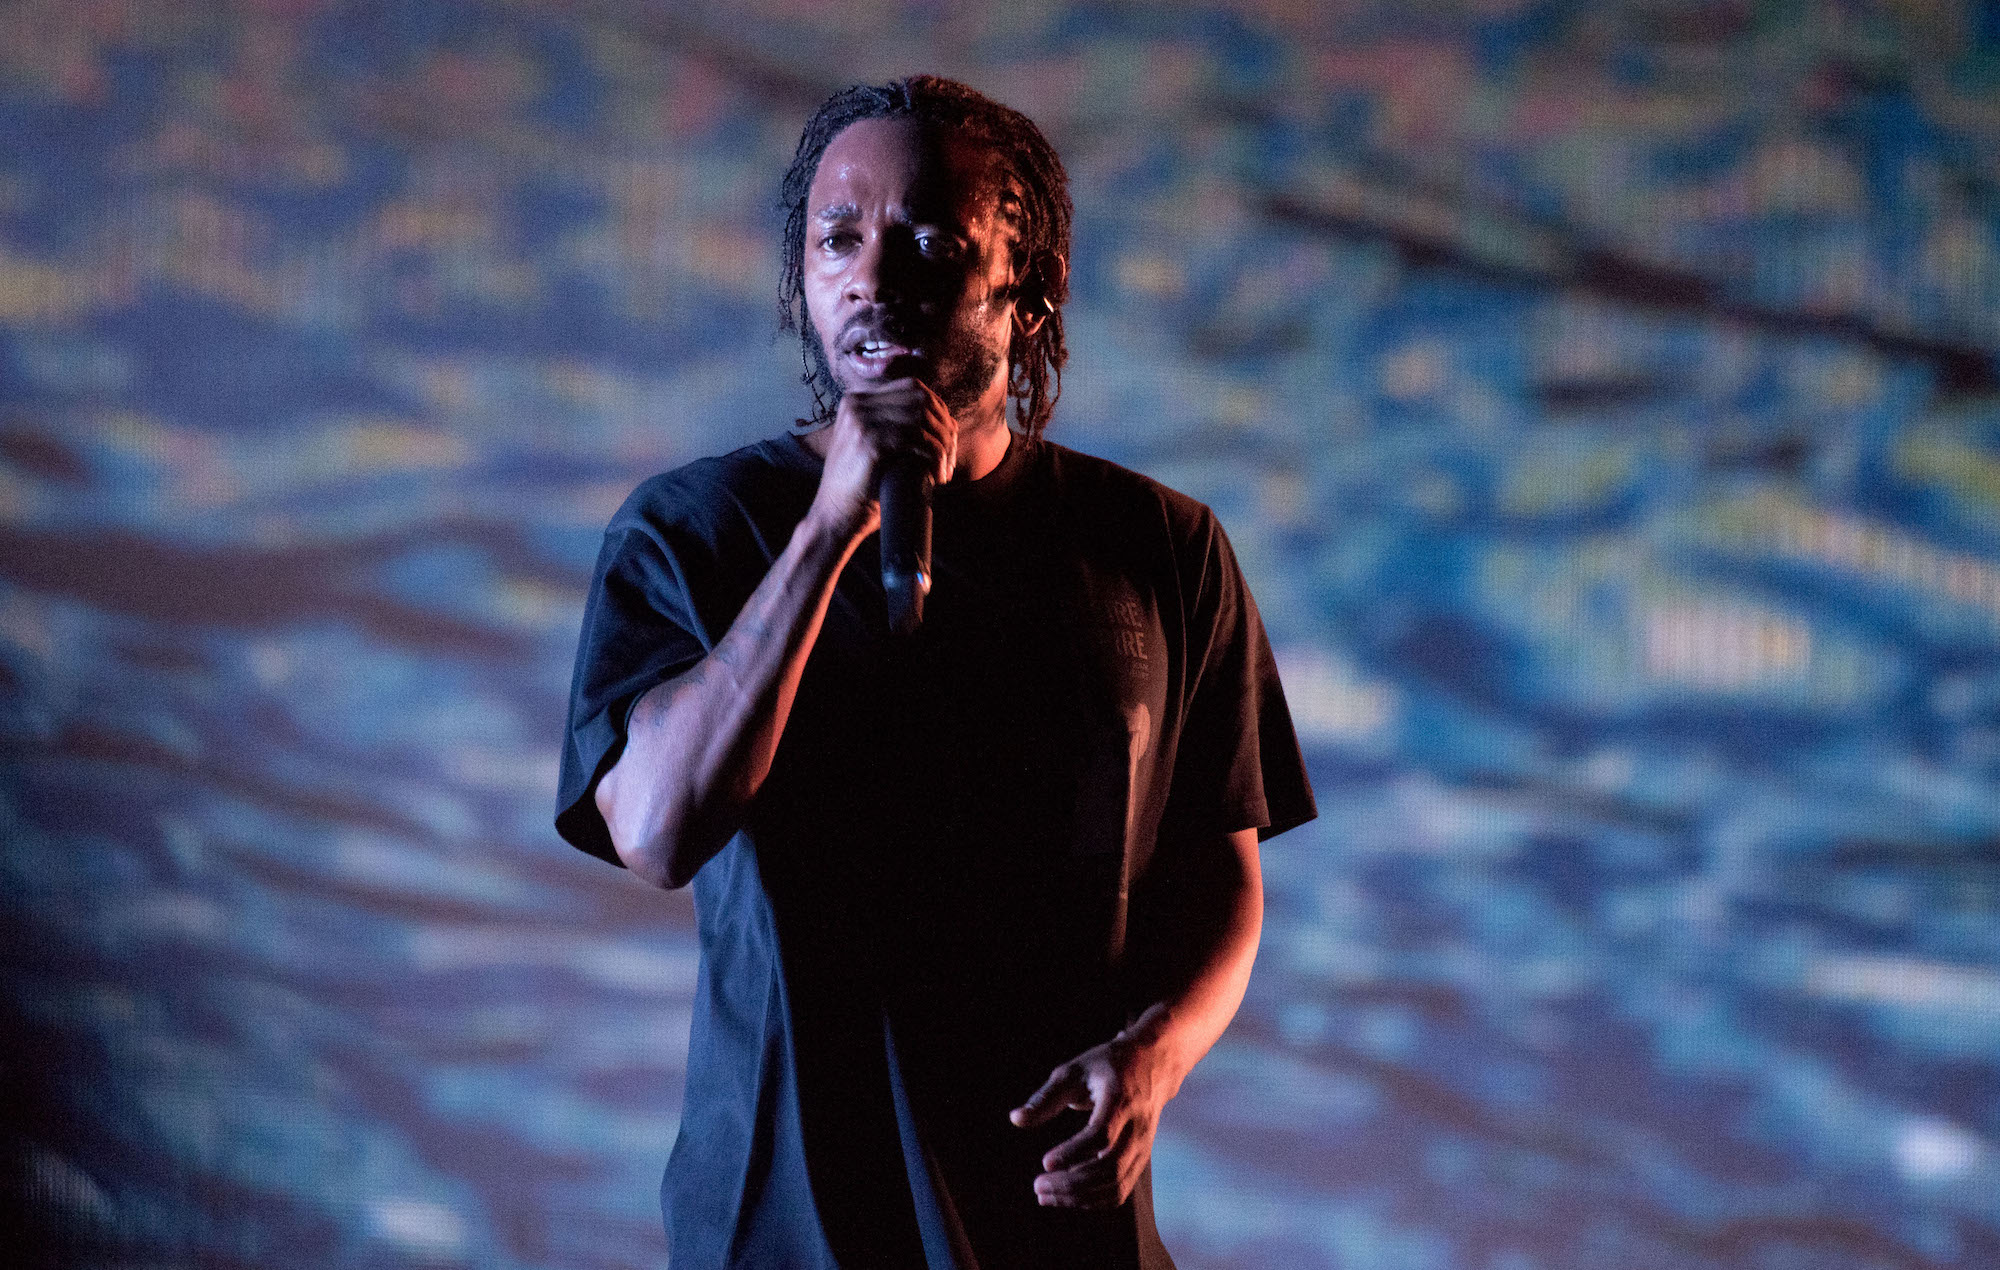 Top Dawg Entertainment boss hints new Kendrick Lamar music is on the way